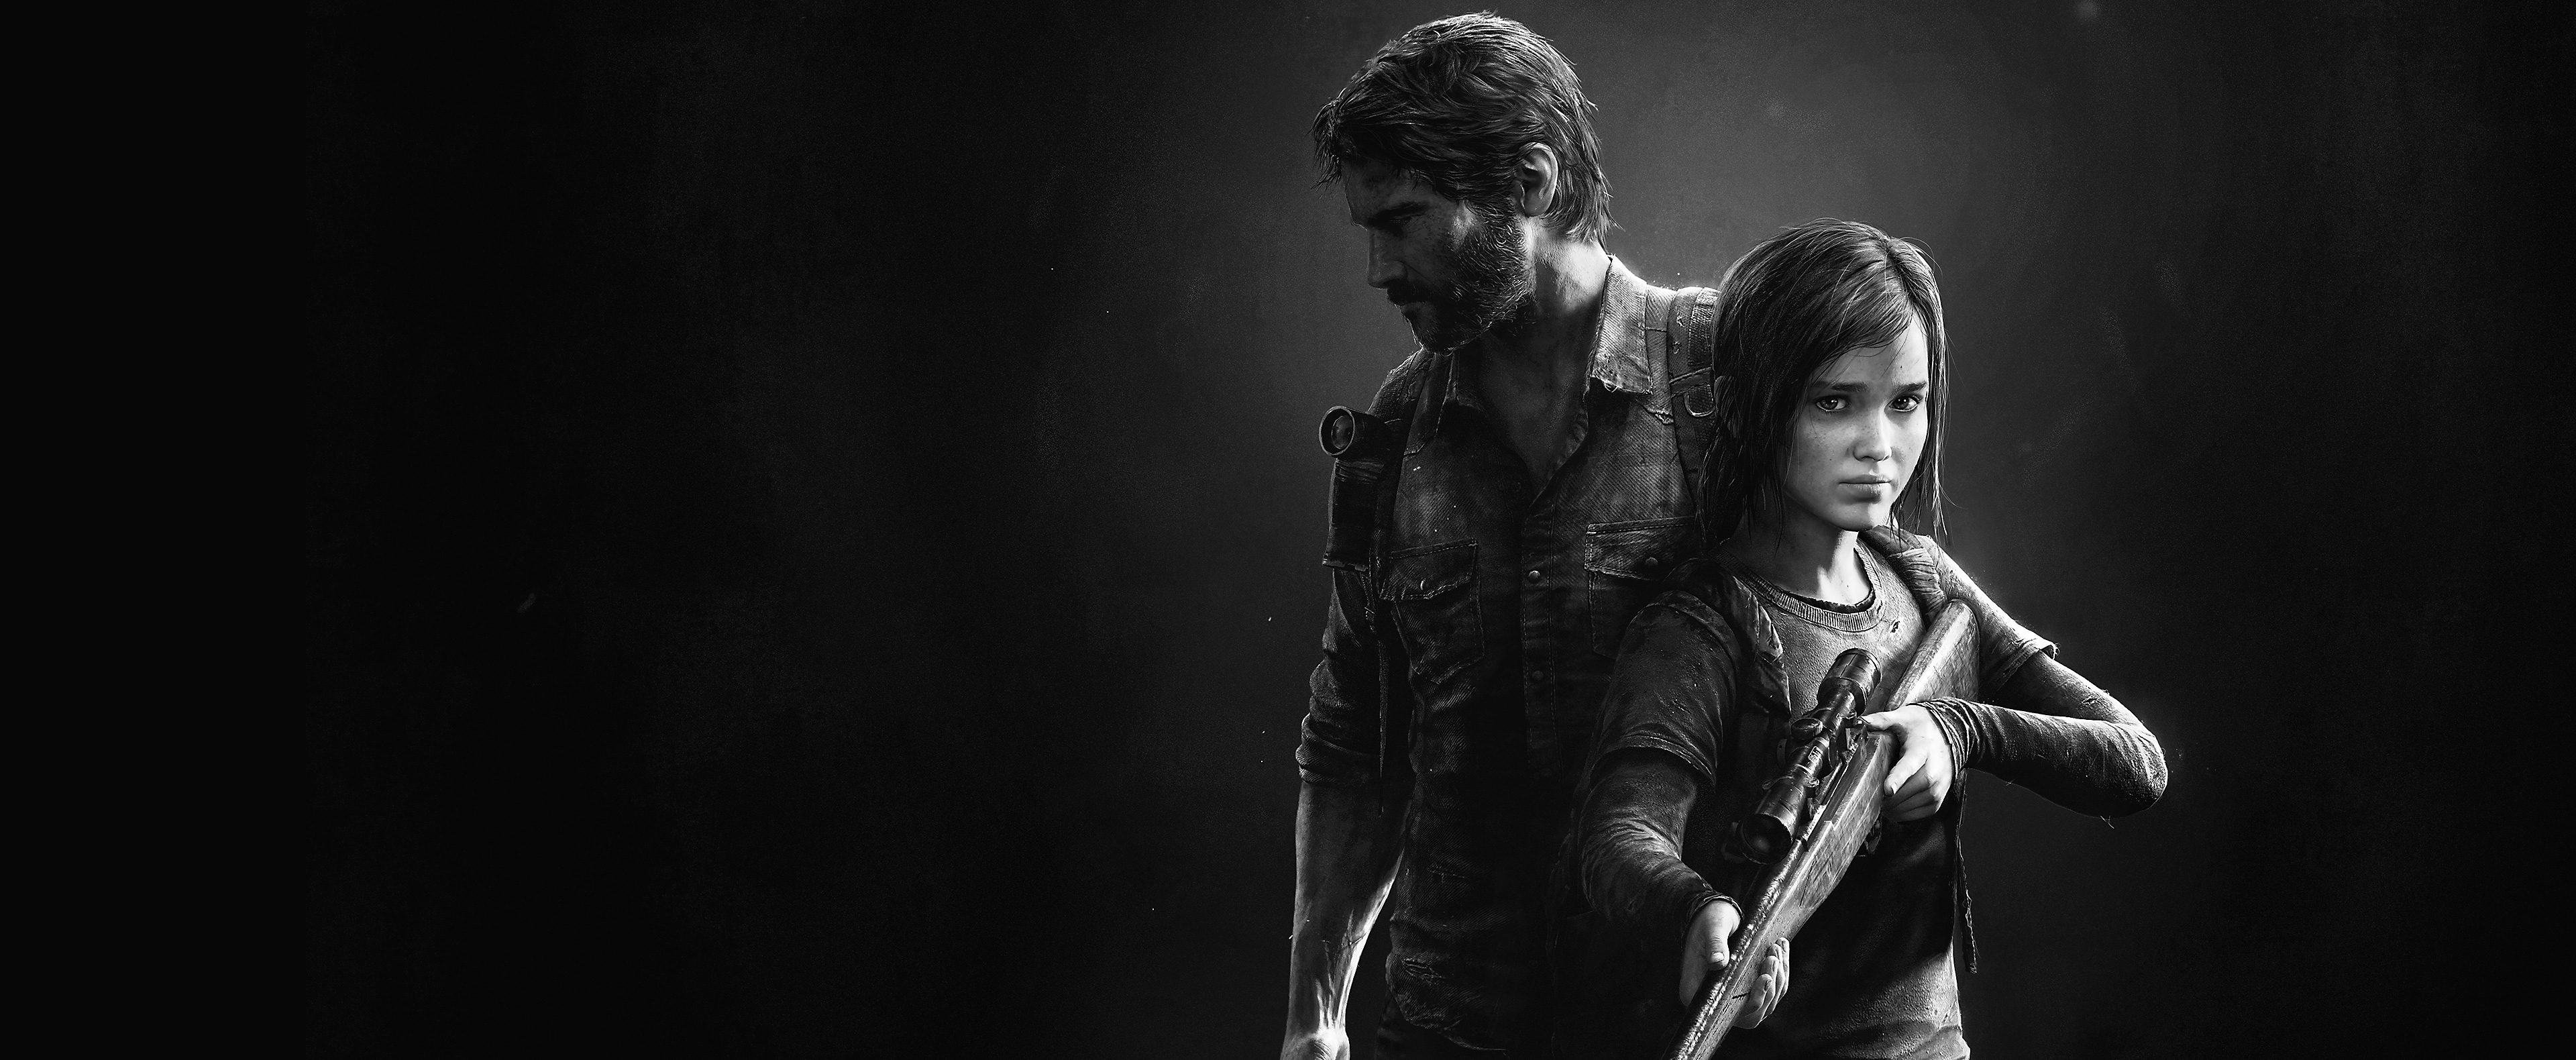 the last of us remastered hero